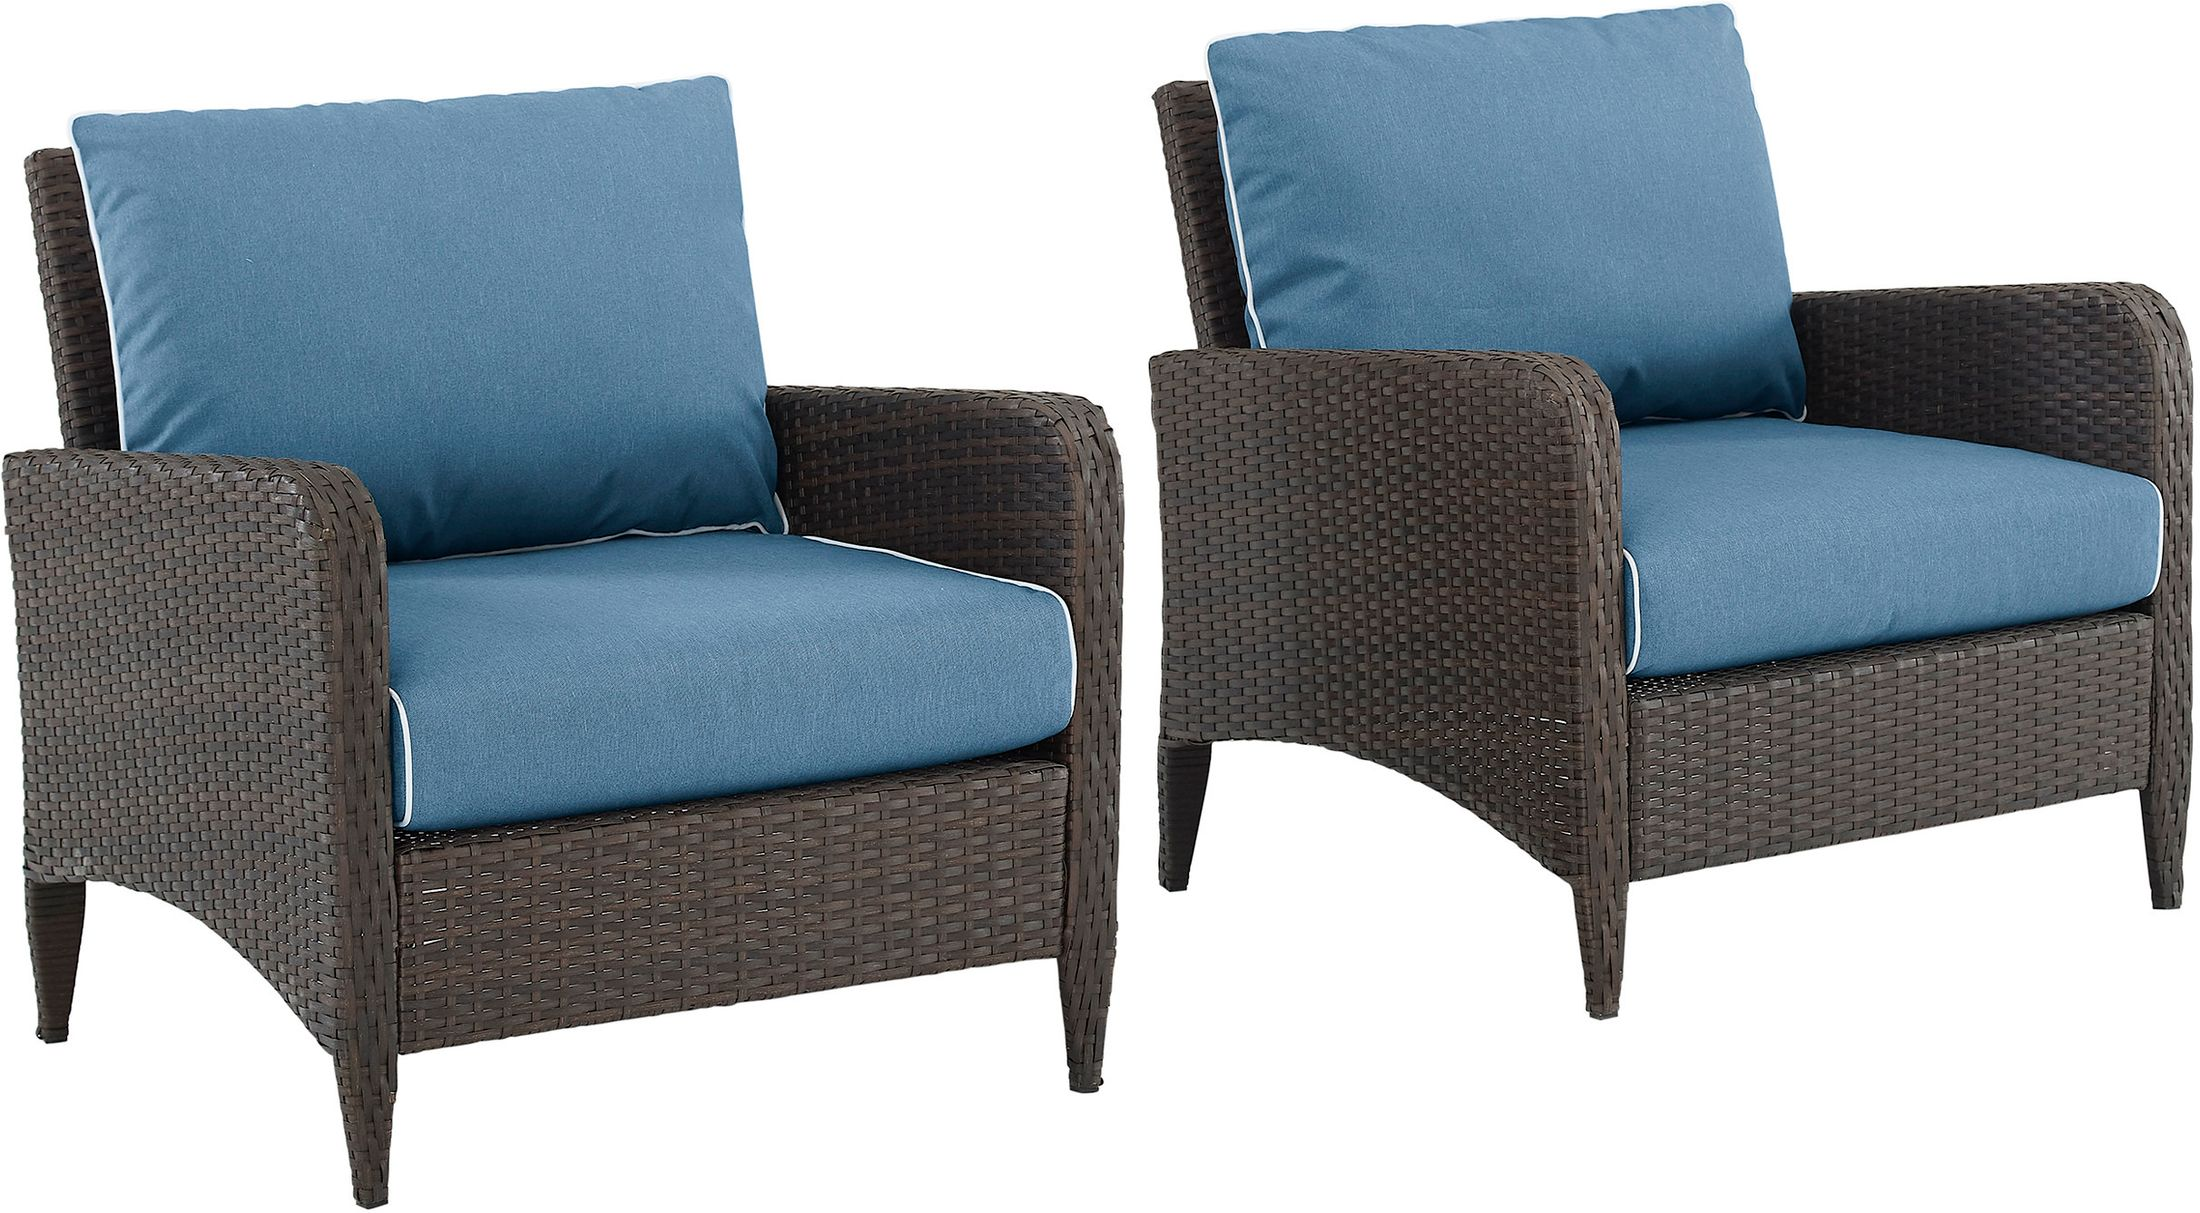 Outdoor Furniture - Corona Set of 2 Outdoor Chairs